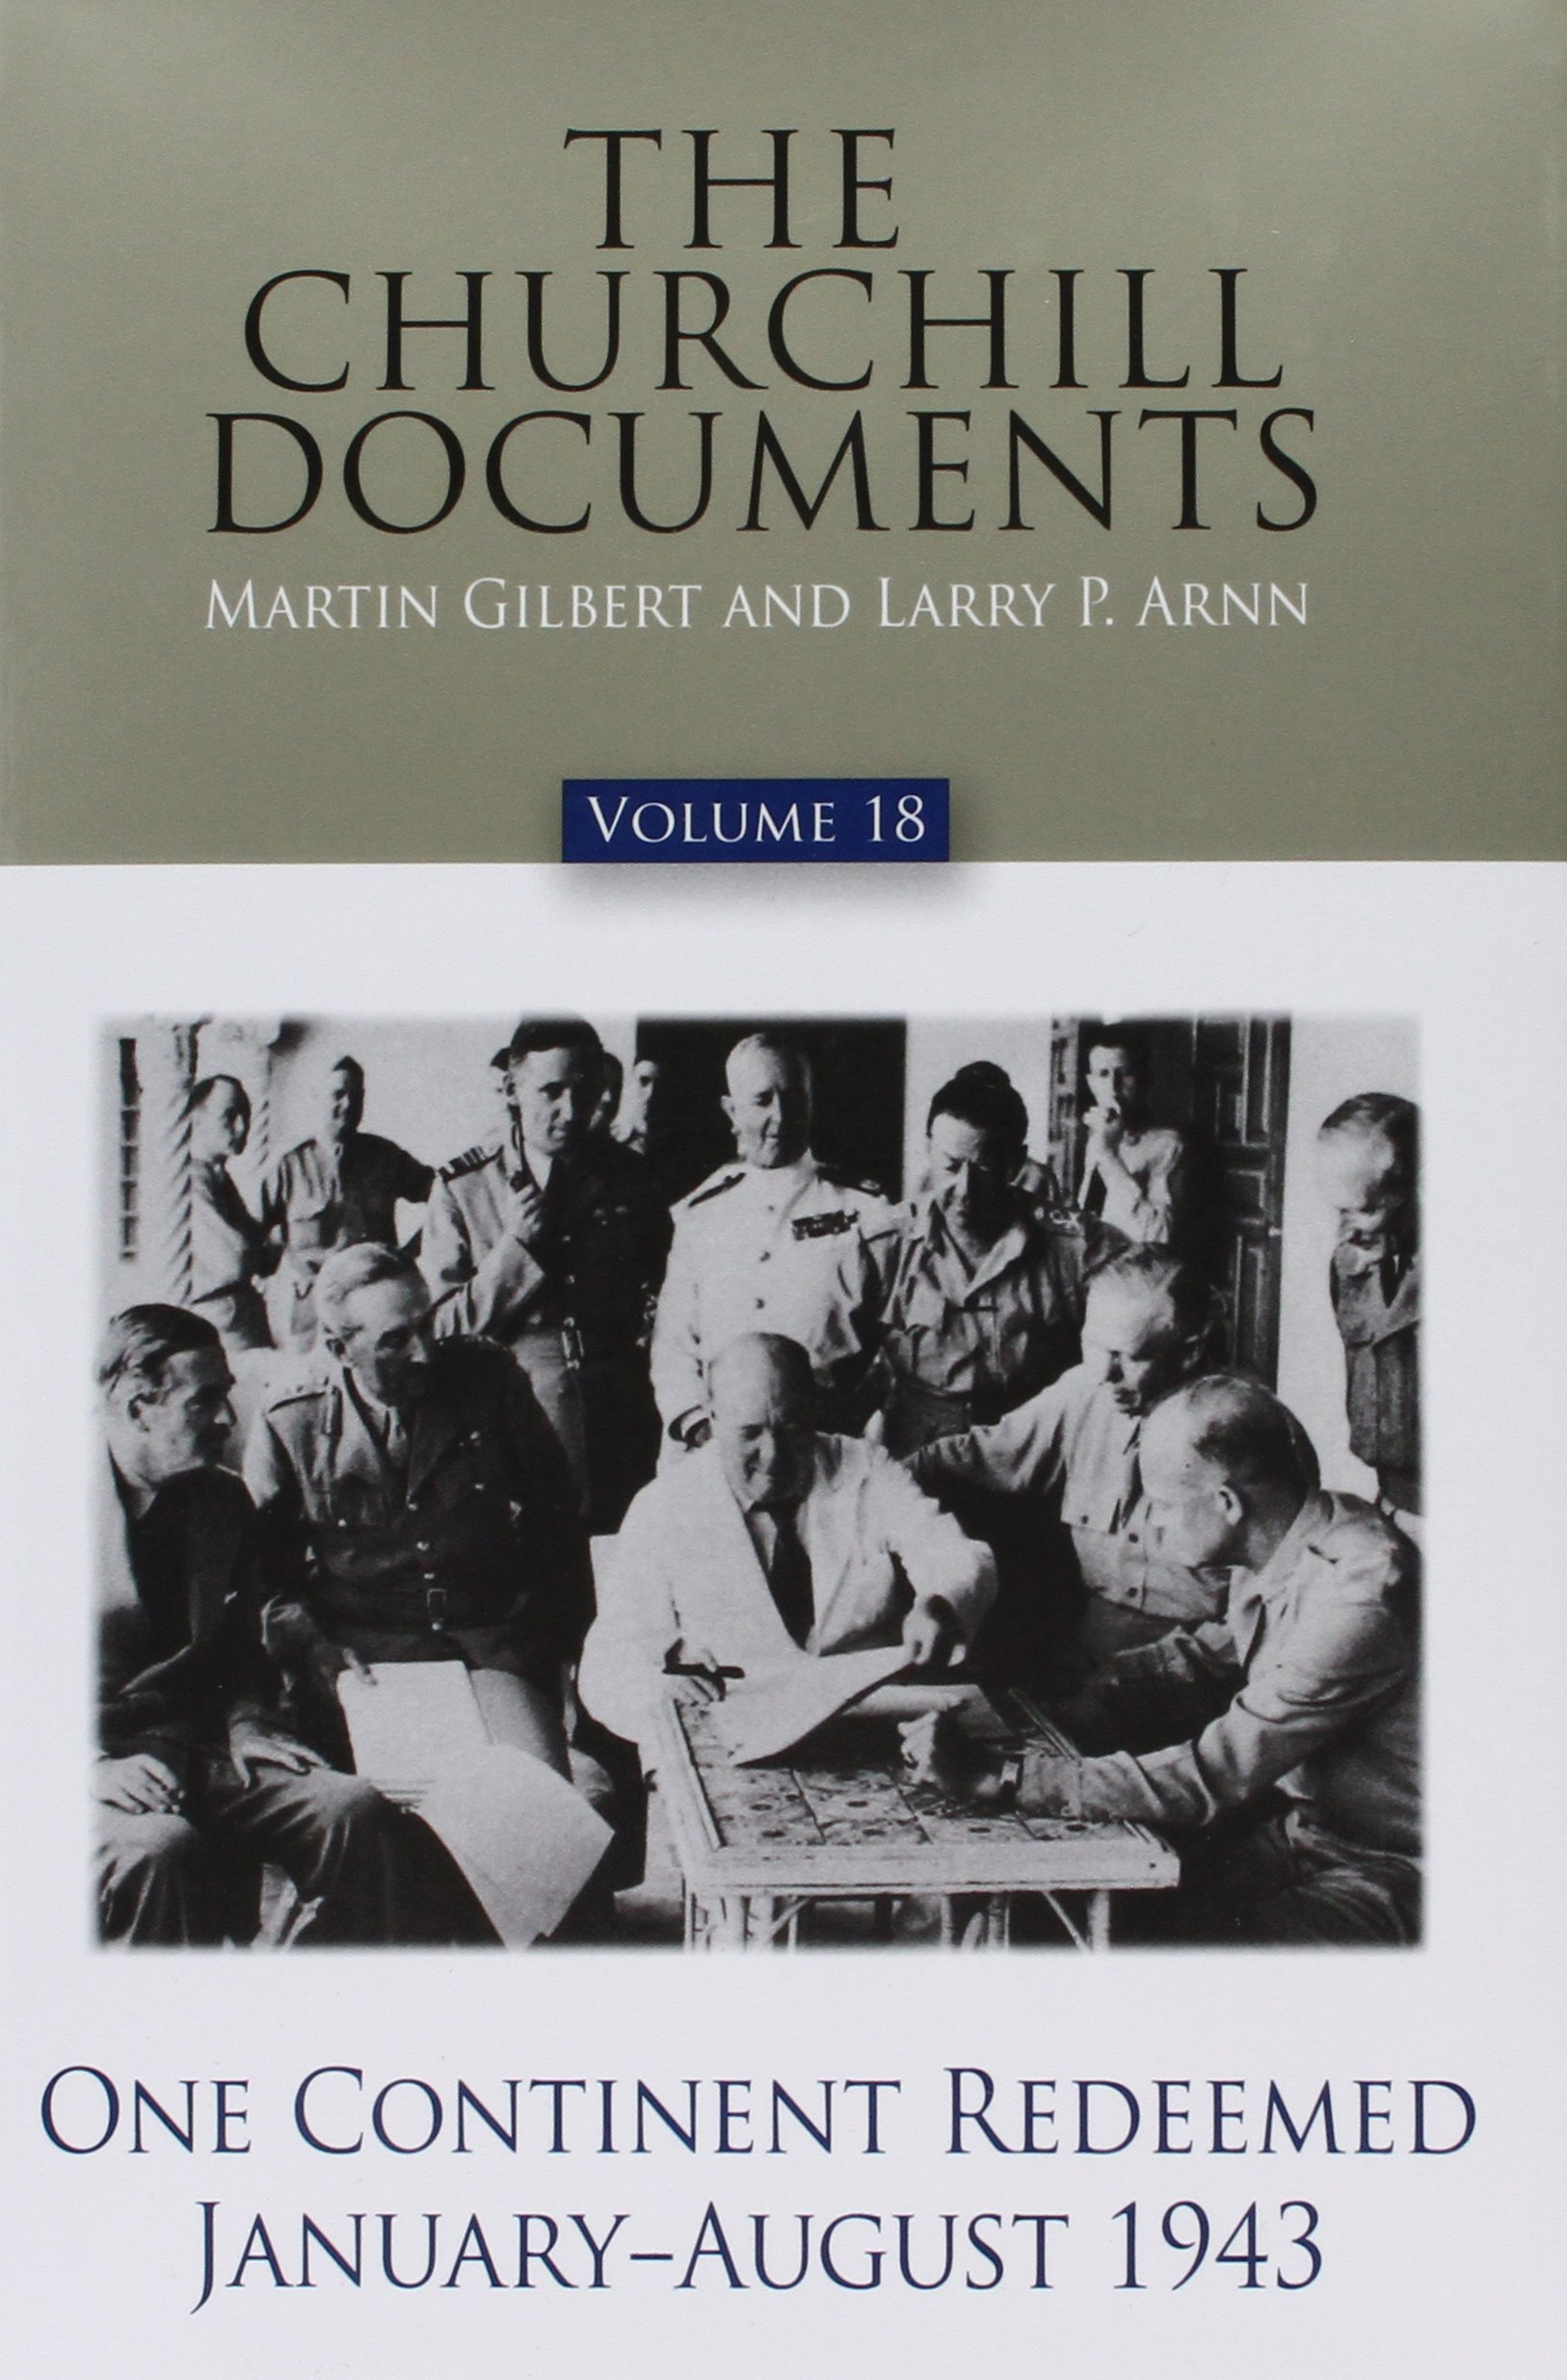 The Churchill Documents Vol. 18: One Continent Redeemed, January-August 1943 by Hillsdale College Press